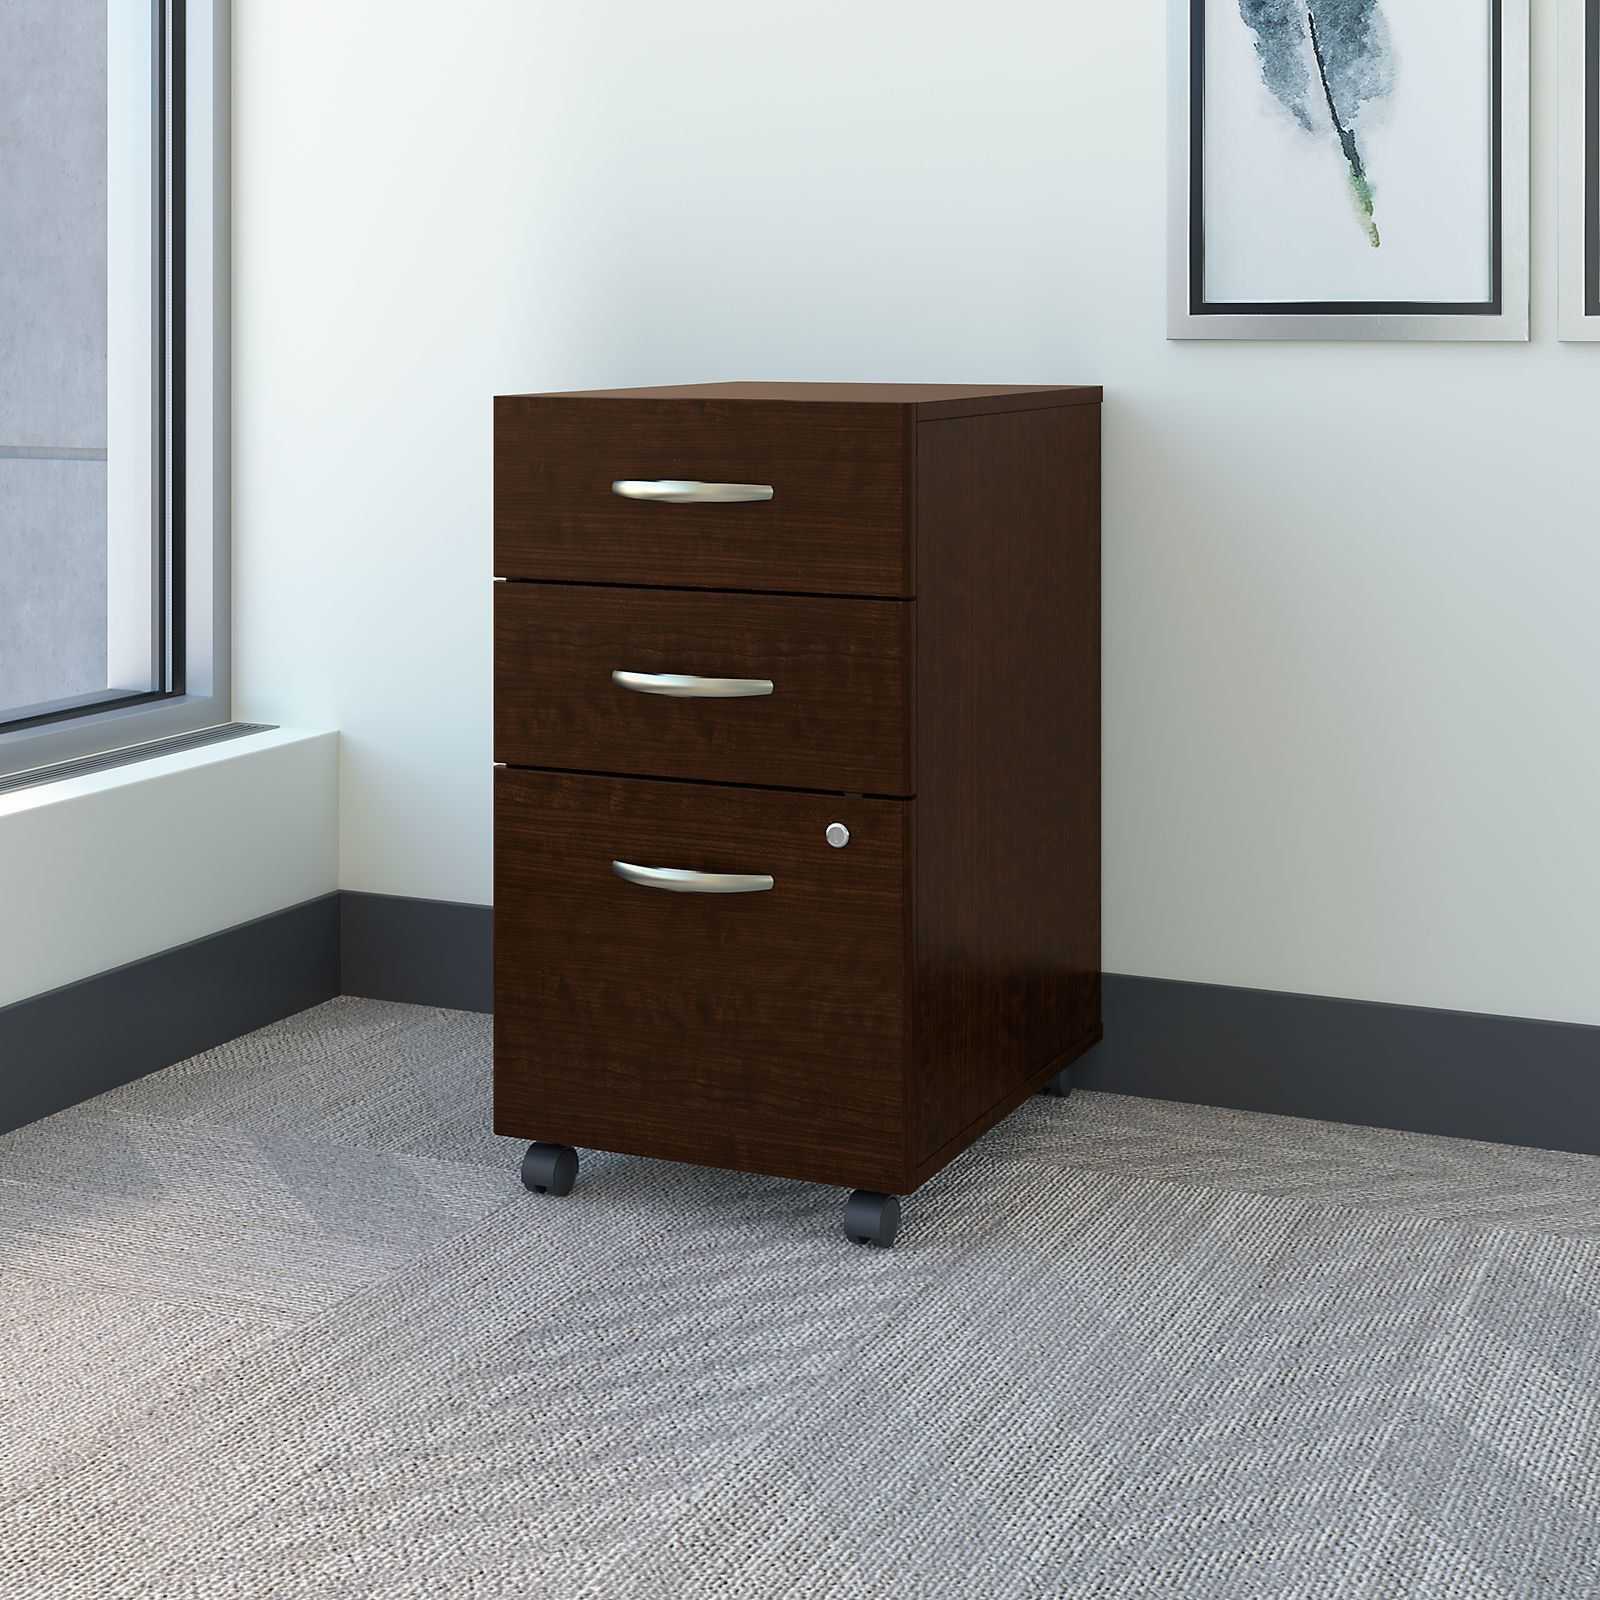 Series C Elite 3 Drawer Vertical Filing Cabinet